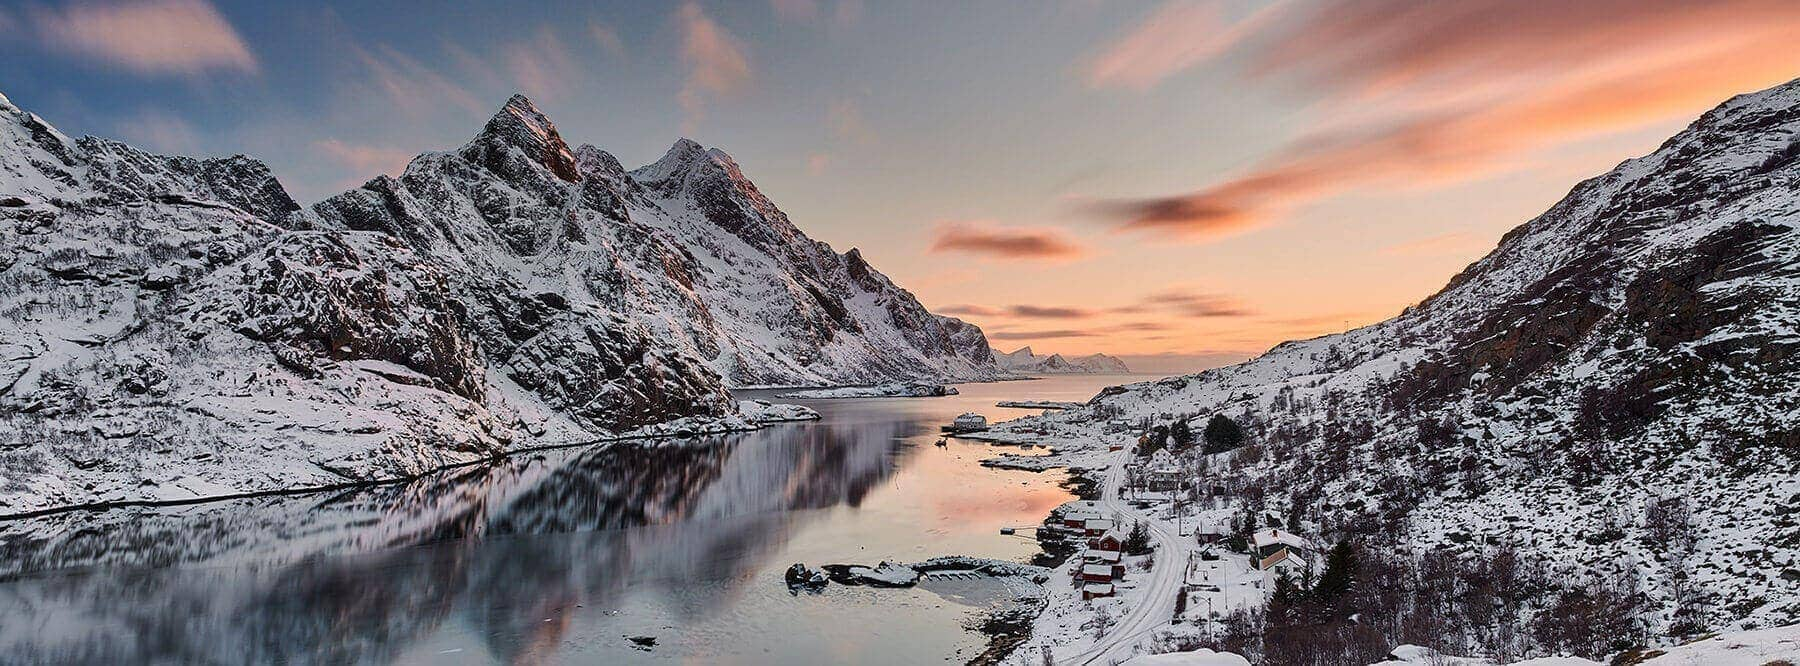 Landscape Seascape Photography Workshop Lofoten Islands Norway 2021 Francesco Gola Masterclass